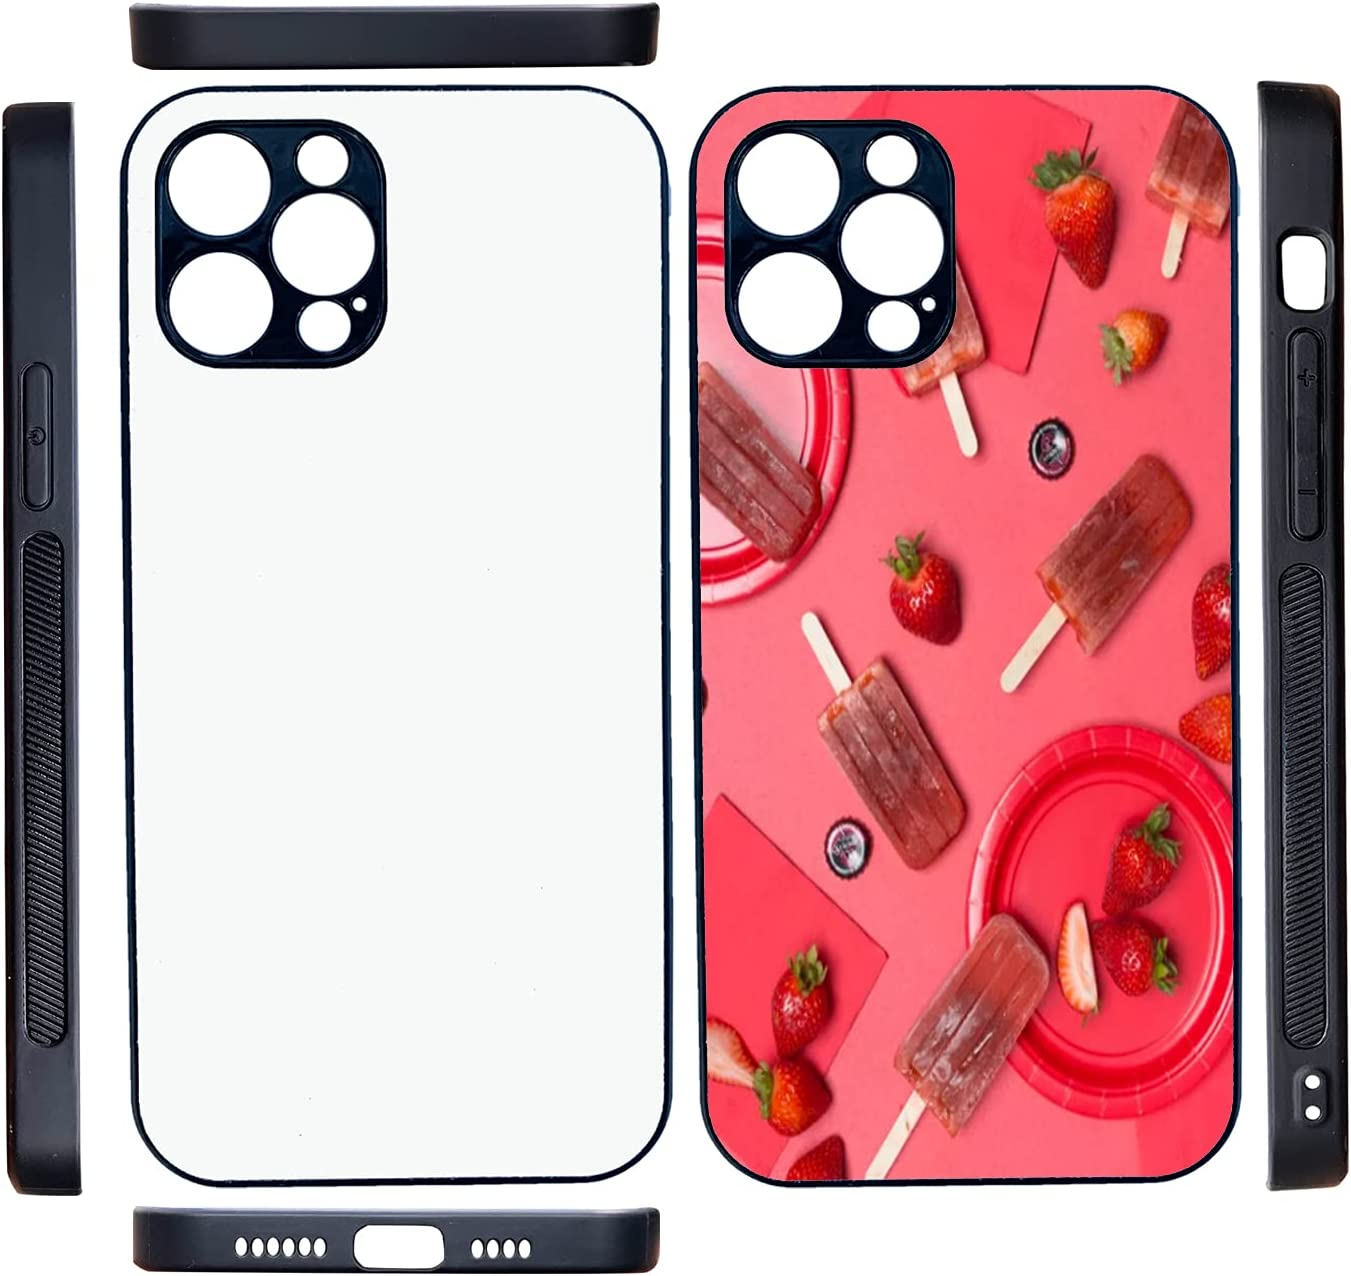 JUSTRY 5PCS Sublimation Blanks Phone 2021new shipping free shipping High material with Compatible Case Covers